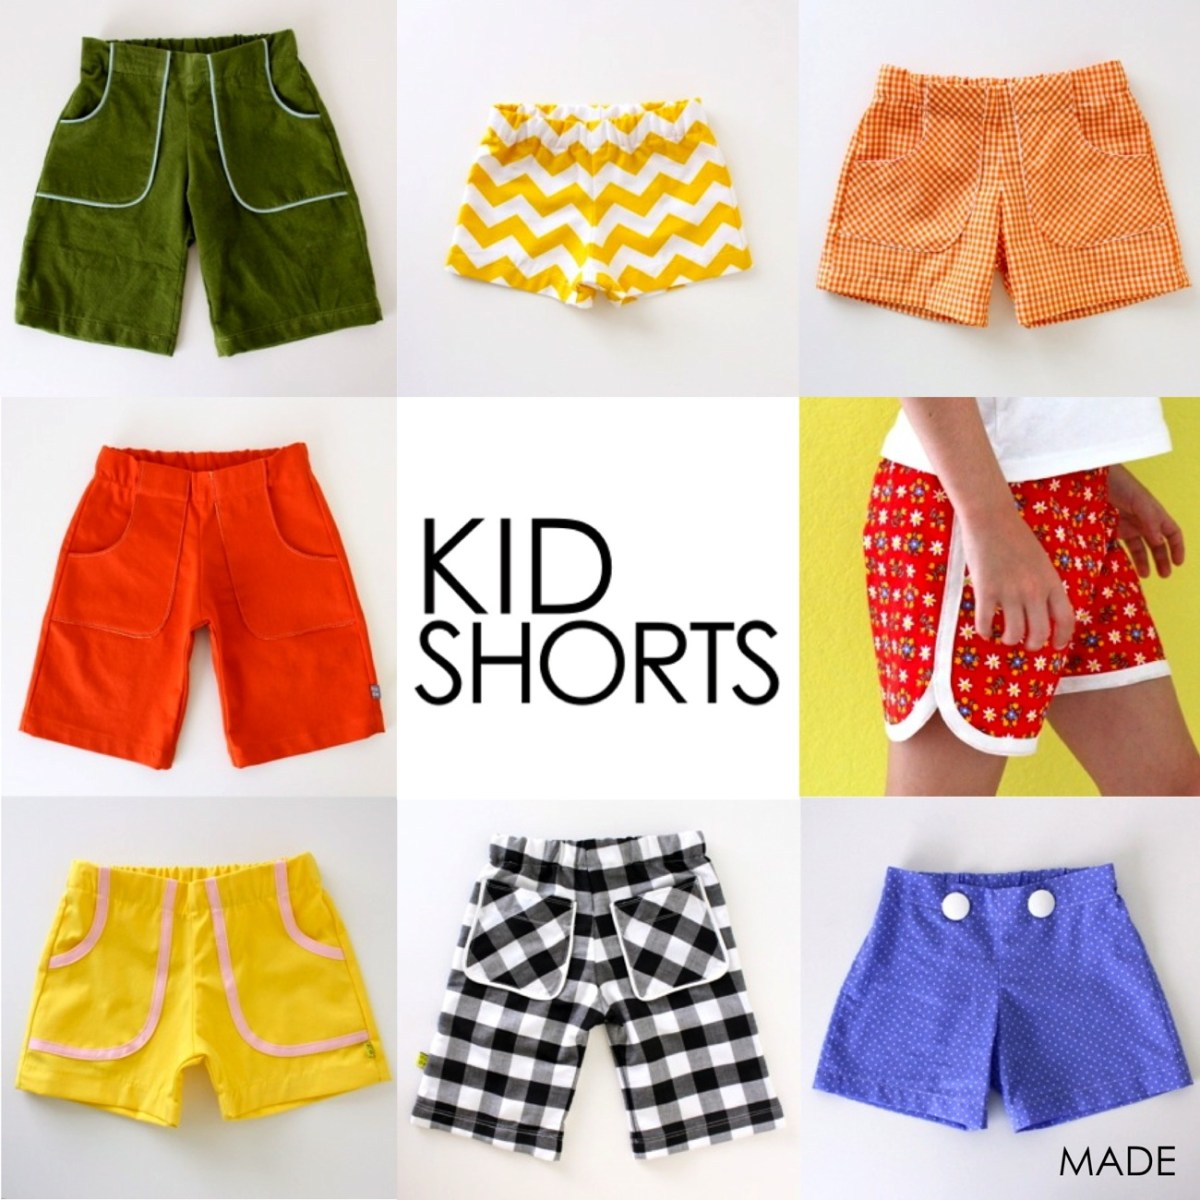 Kids Patterns Sewing Pattern Kid Shortsages 12 Months To 10 Years Made Everyday